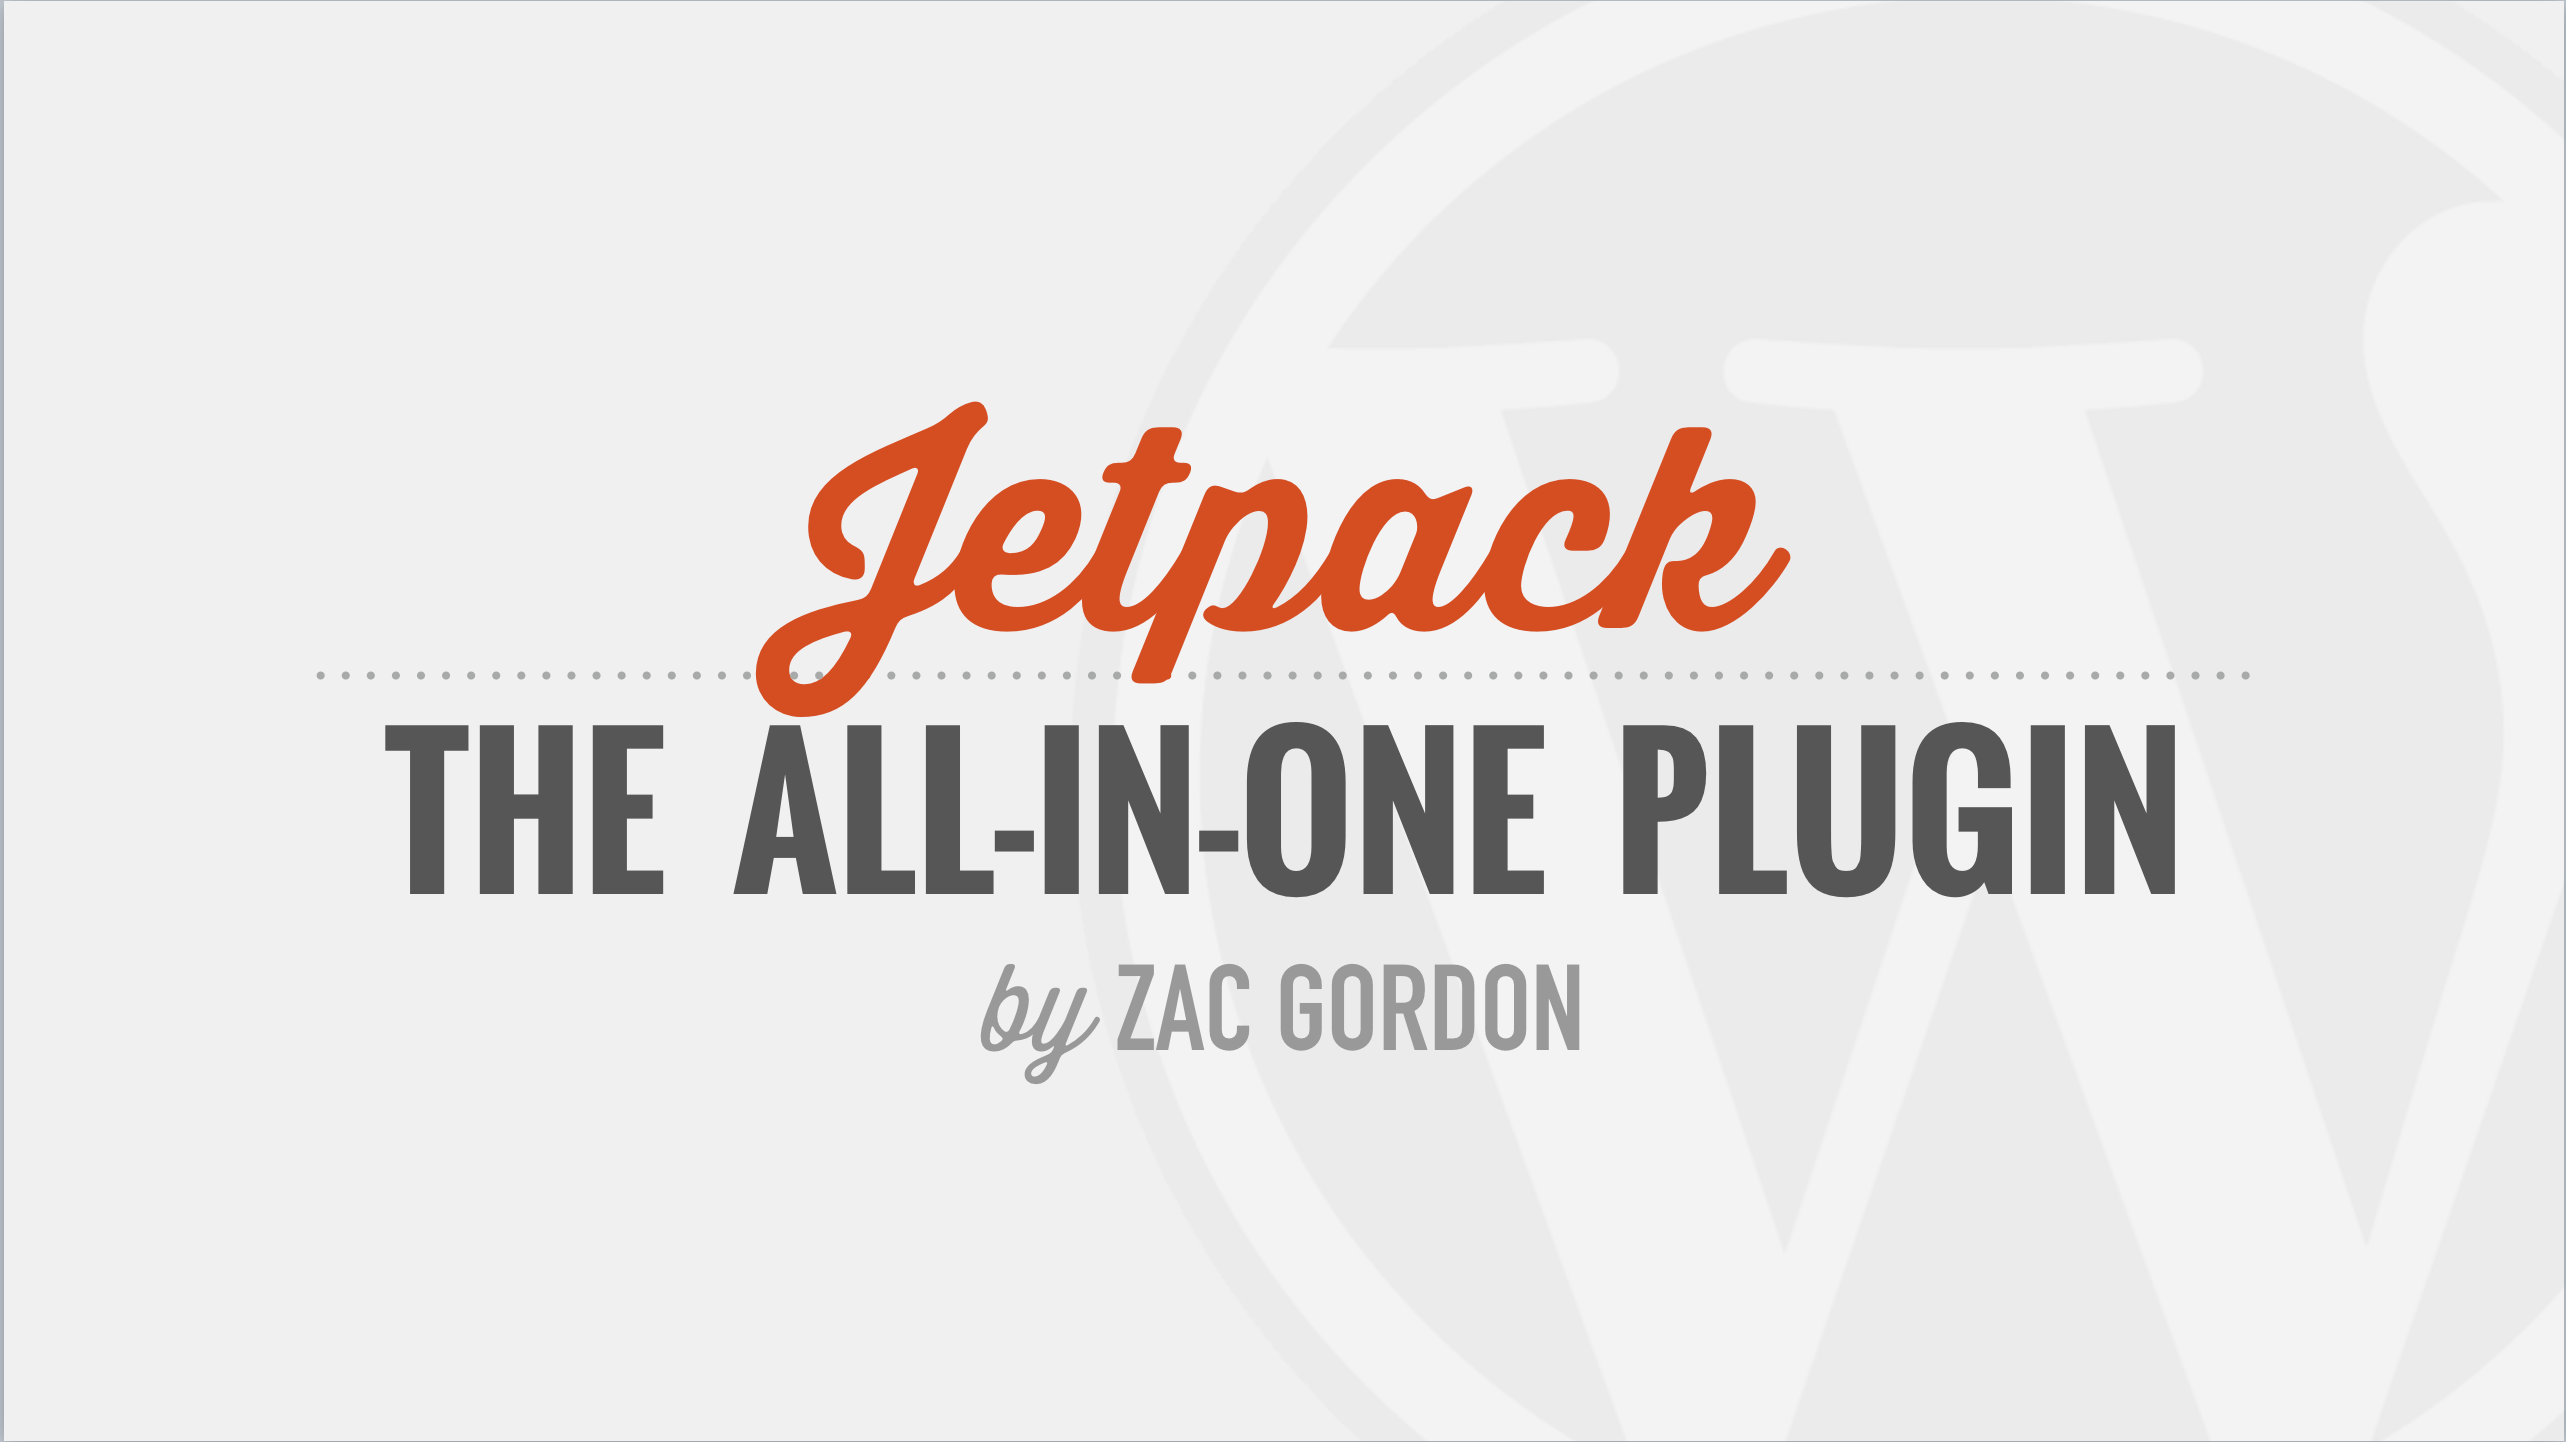 Getting Started With The Jetpack Plugin Tutorial Course